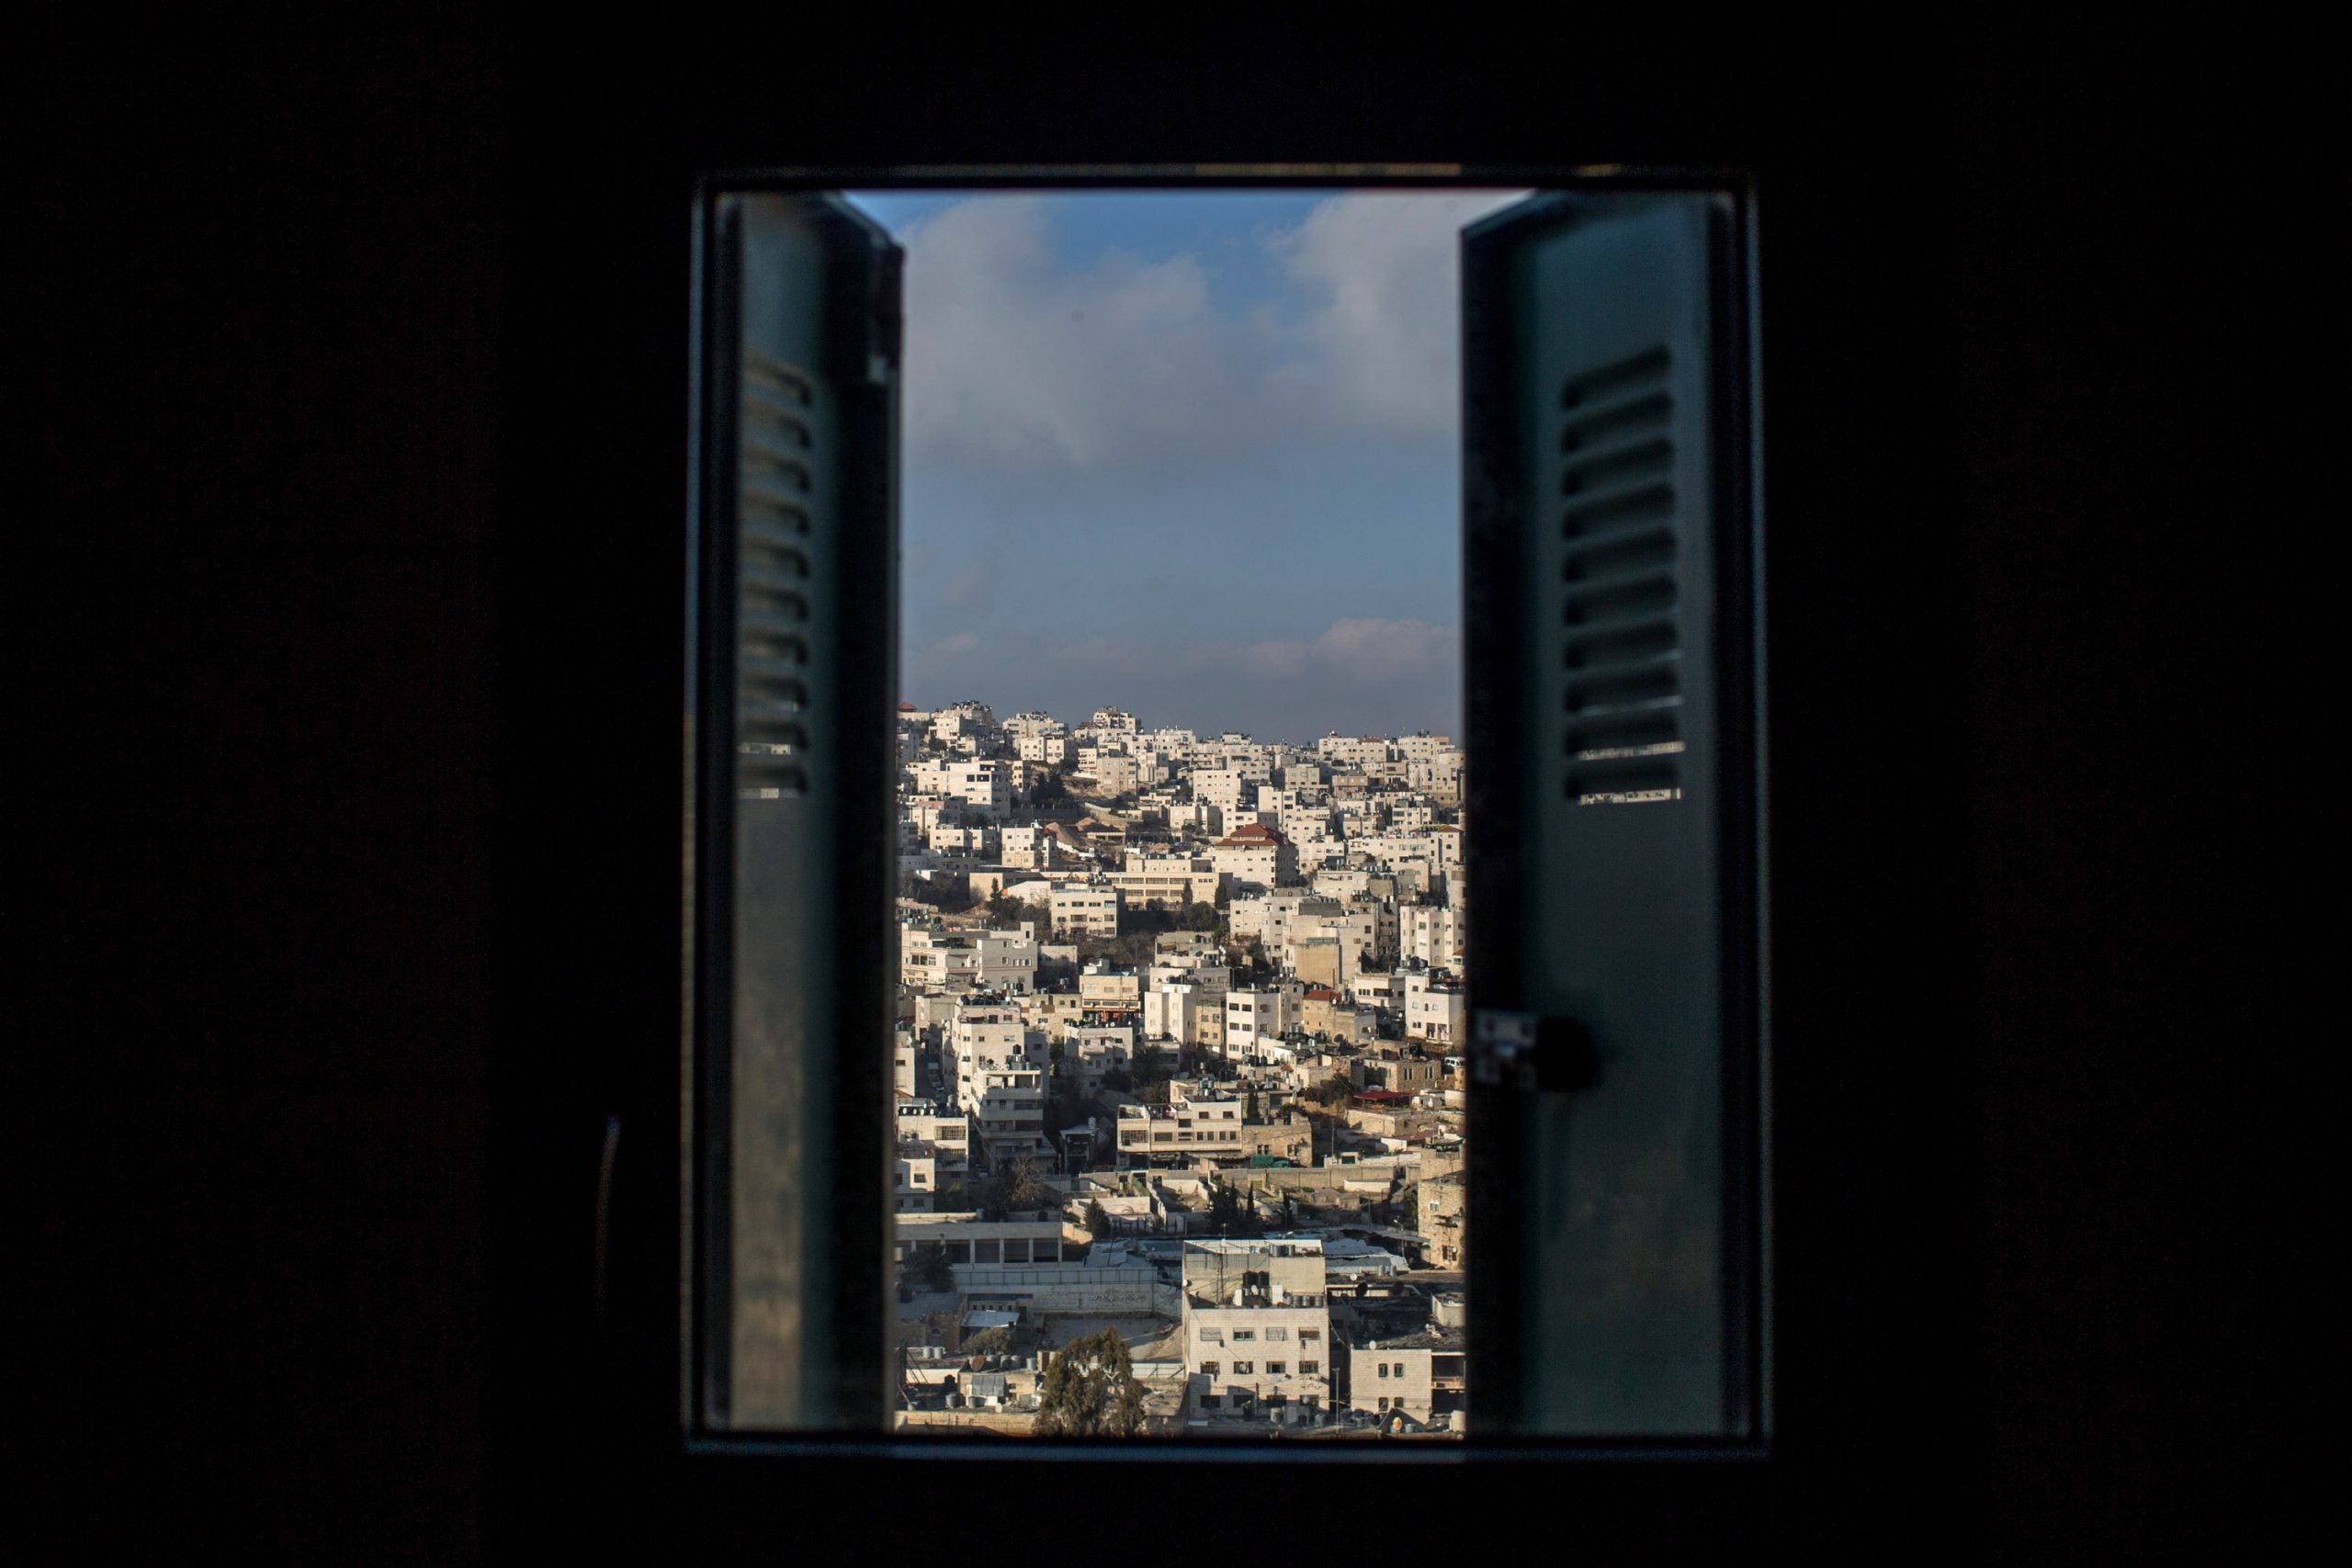 Israel-Palestine: is it time for the world to consider a one-state approach?